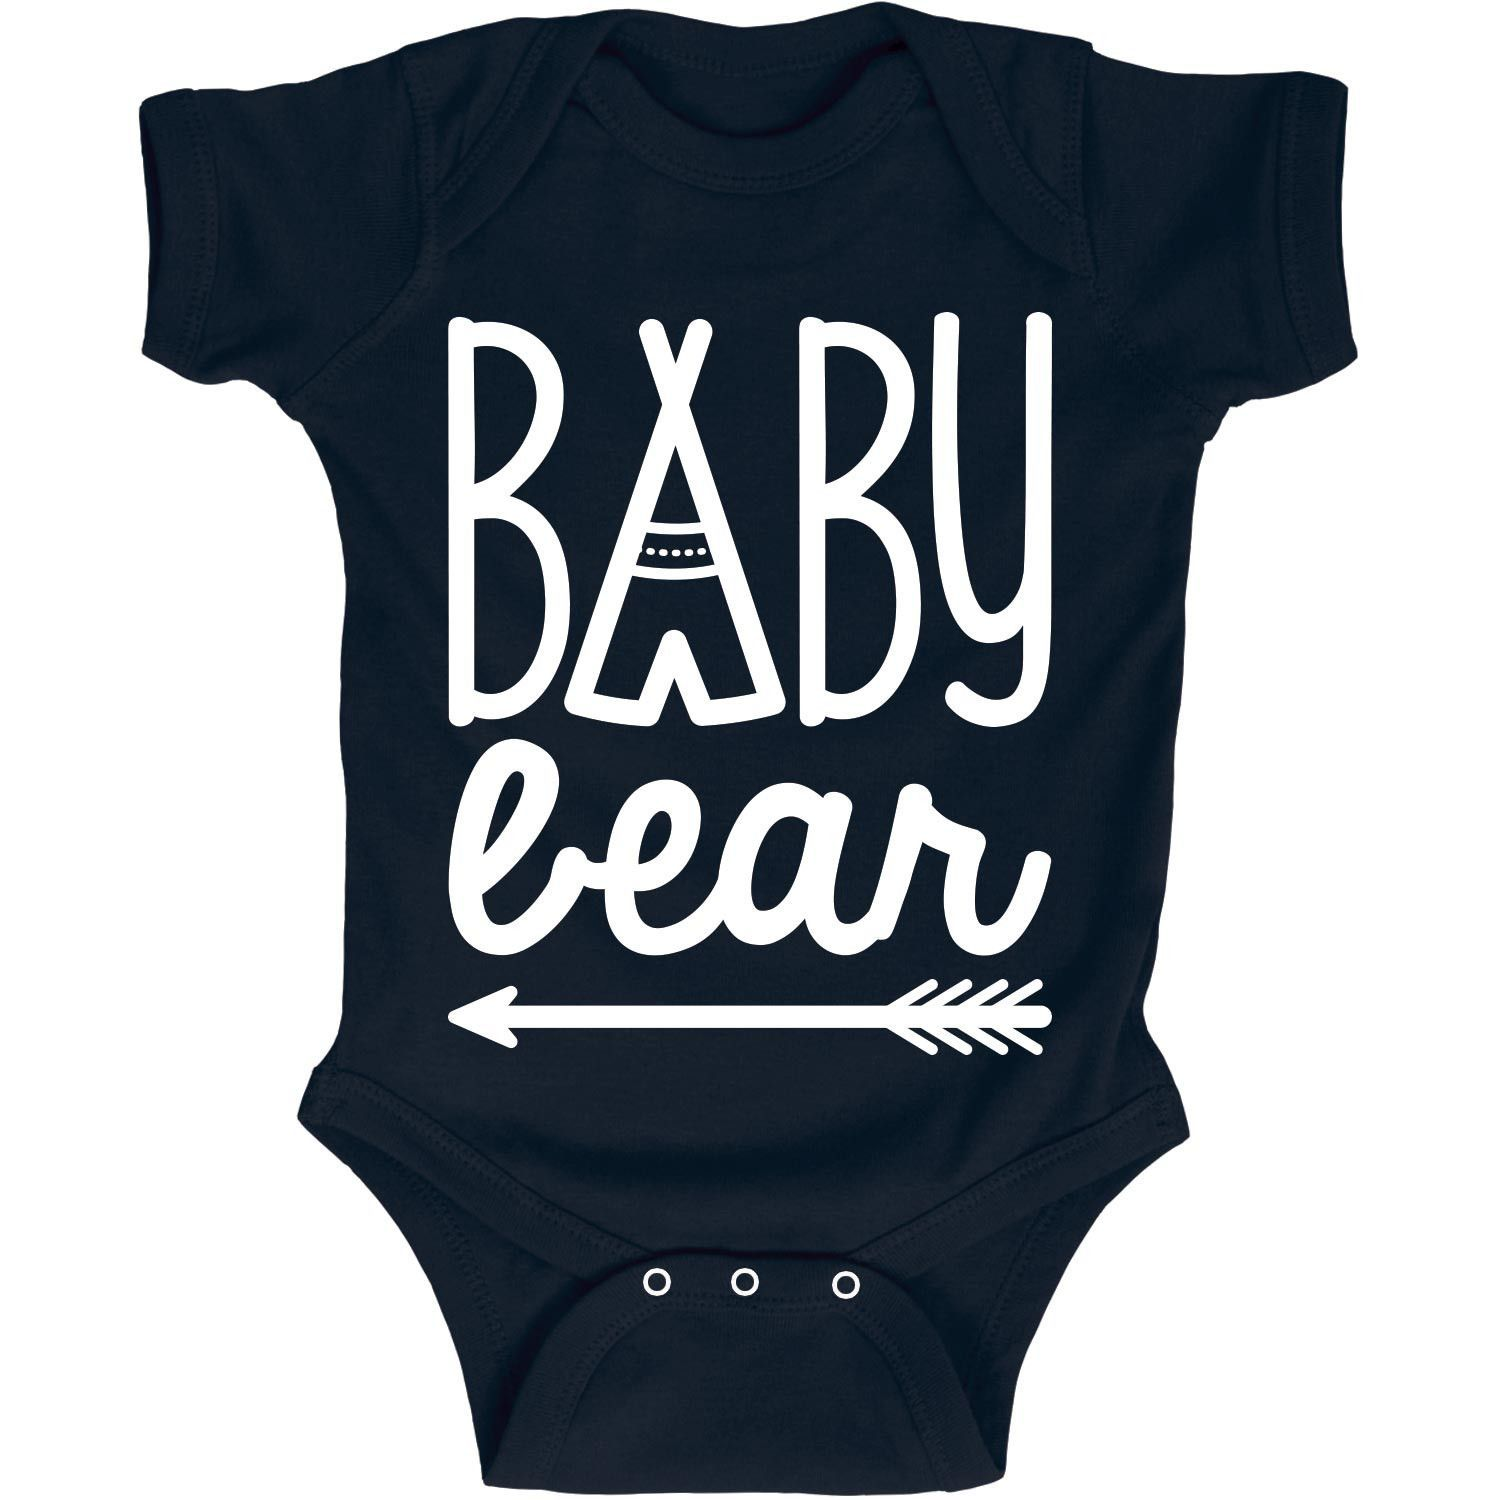 Baby Bear Teepee Matching Family Infant One Piece. Cute baby onesies and kids clothes for the family camping trip. All at Kidteez! Fun for the whole camping family!